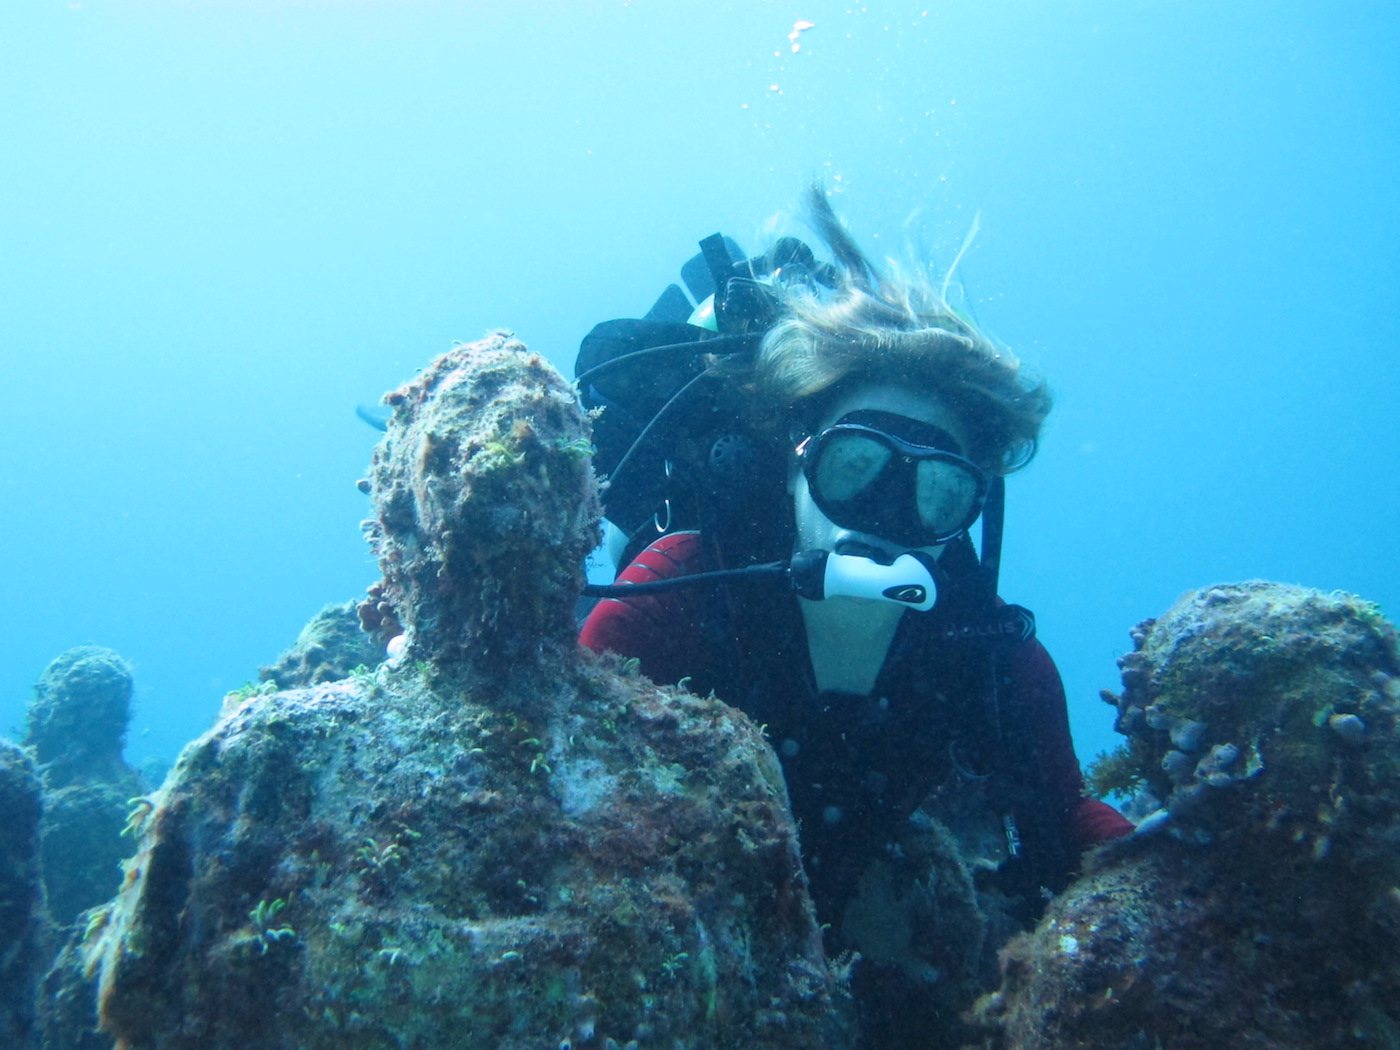 MUSA-Underwater-Museum-Snorkeling-Scuba-Diving-Tours-Isla-Mujeres-Carey-Dive-Center-10